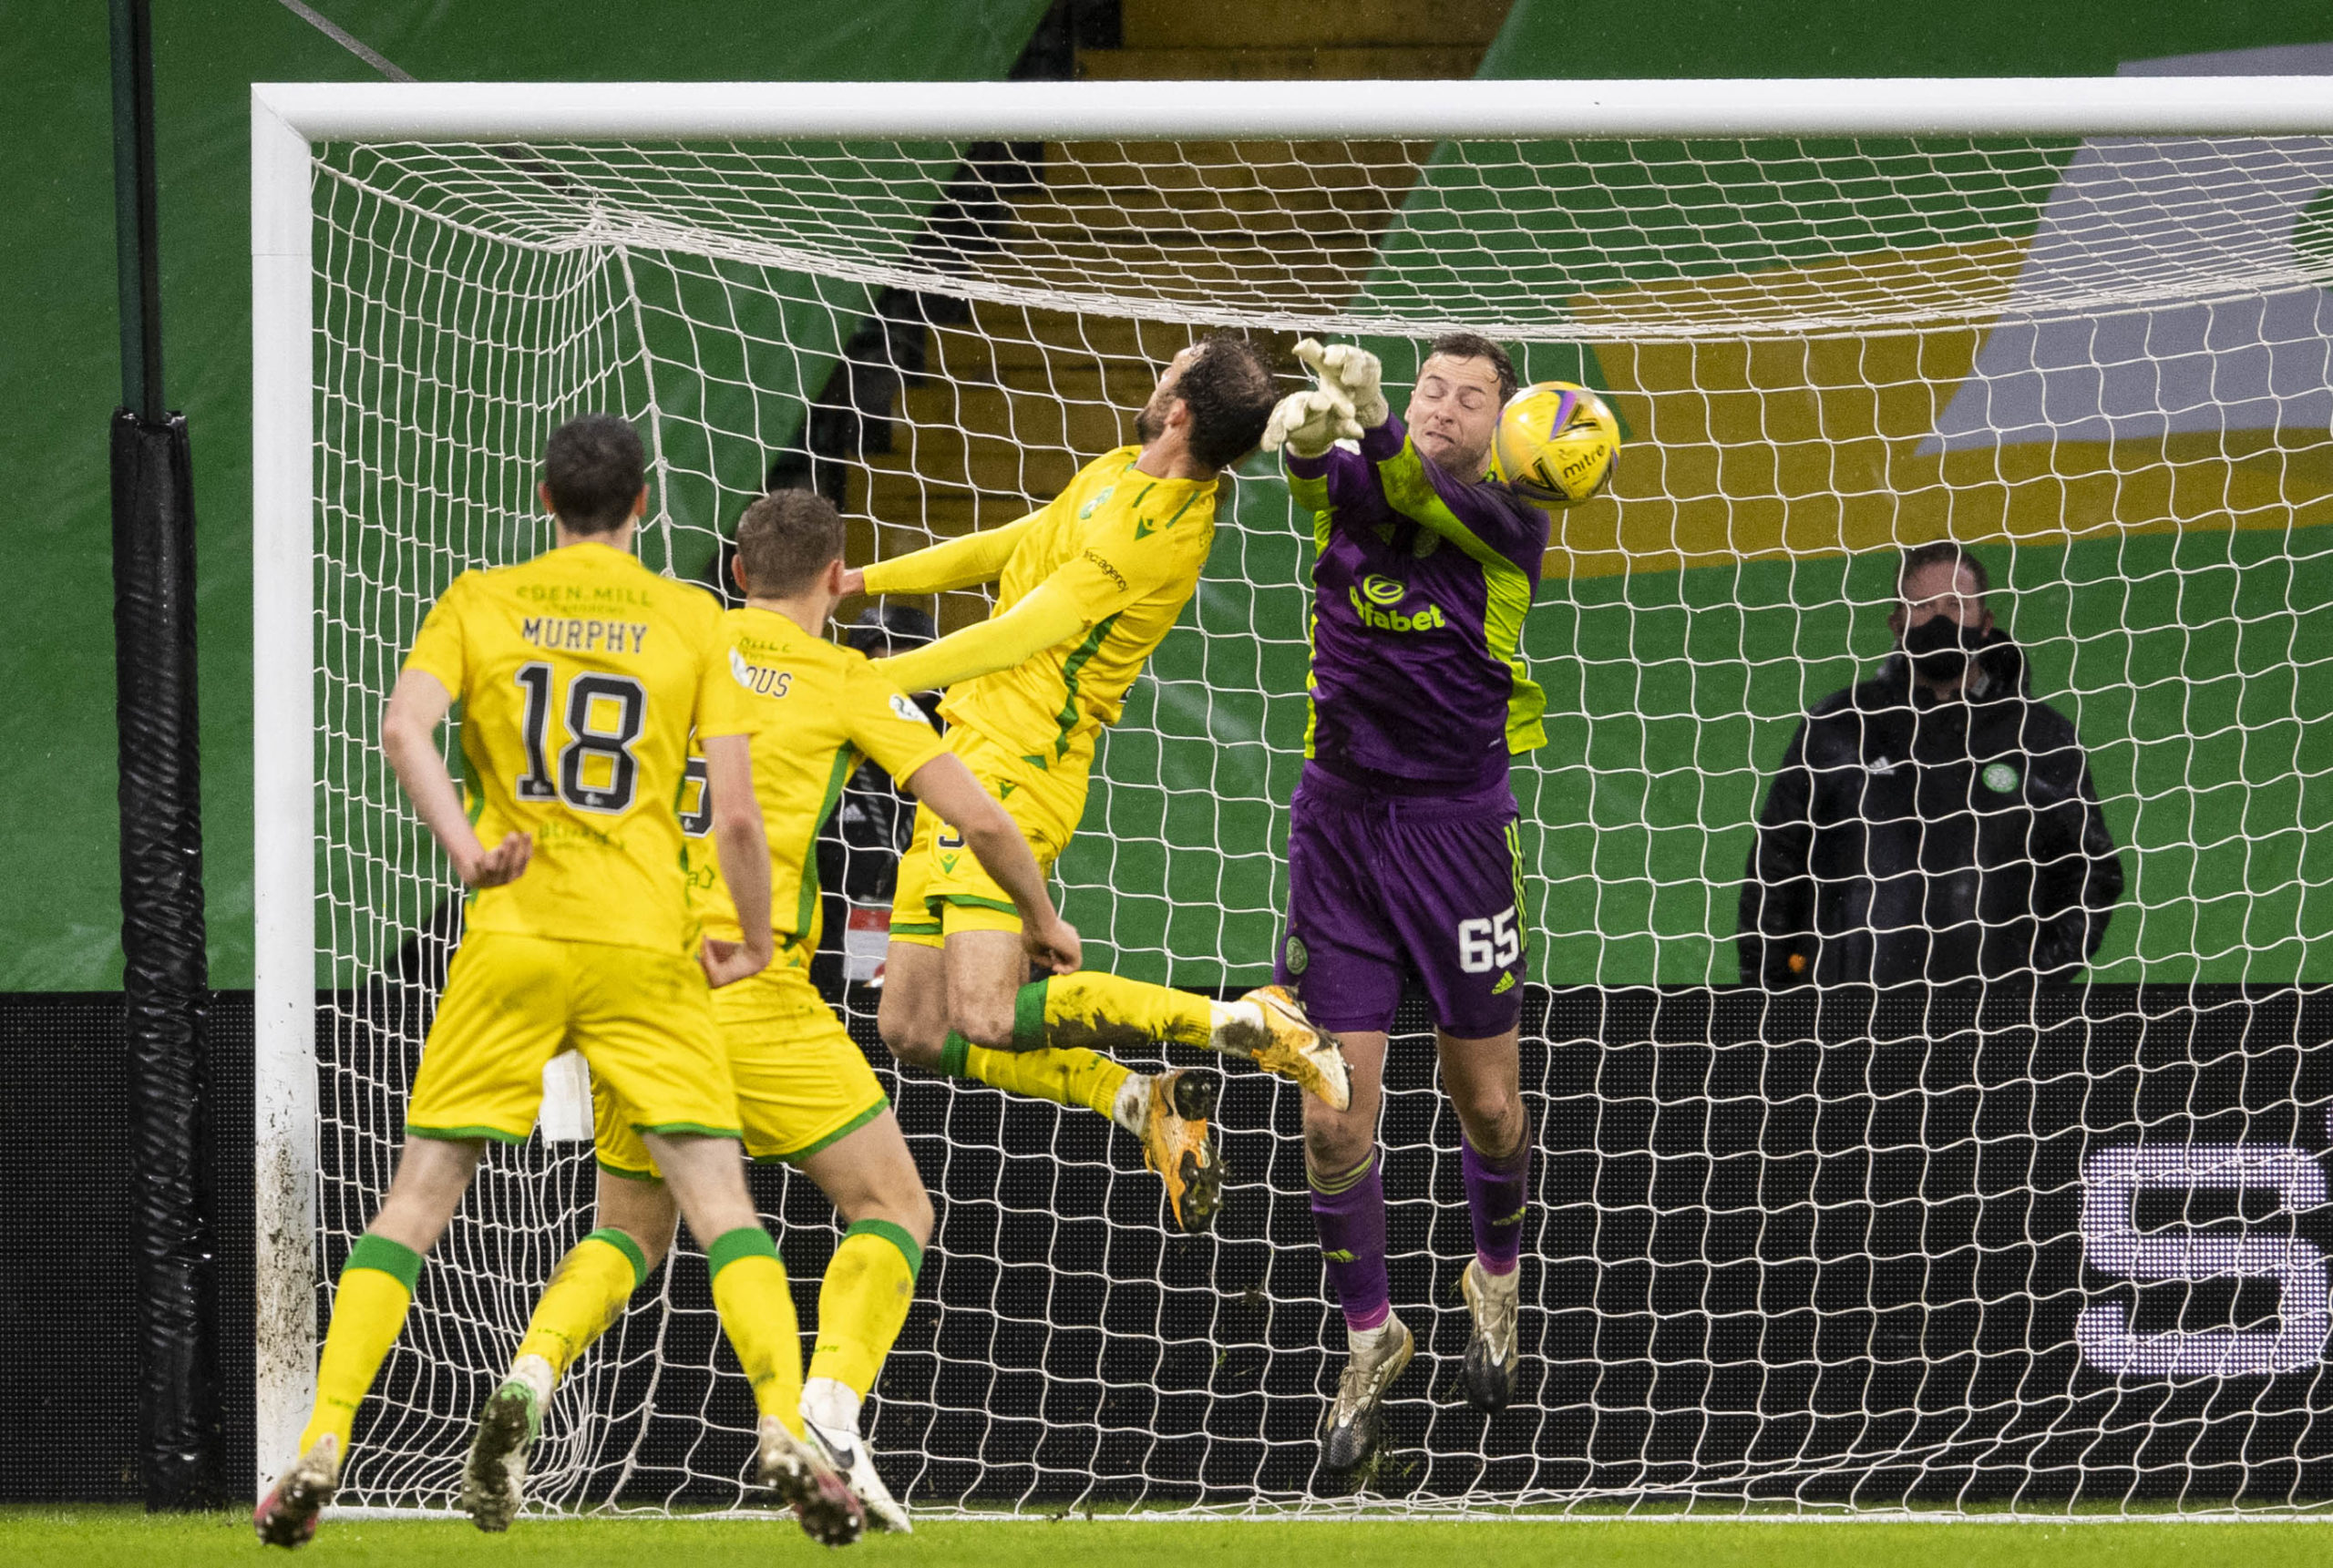 Celtic youngster Conor Hazard impressed before Hibernian howler